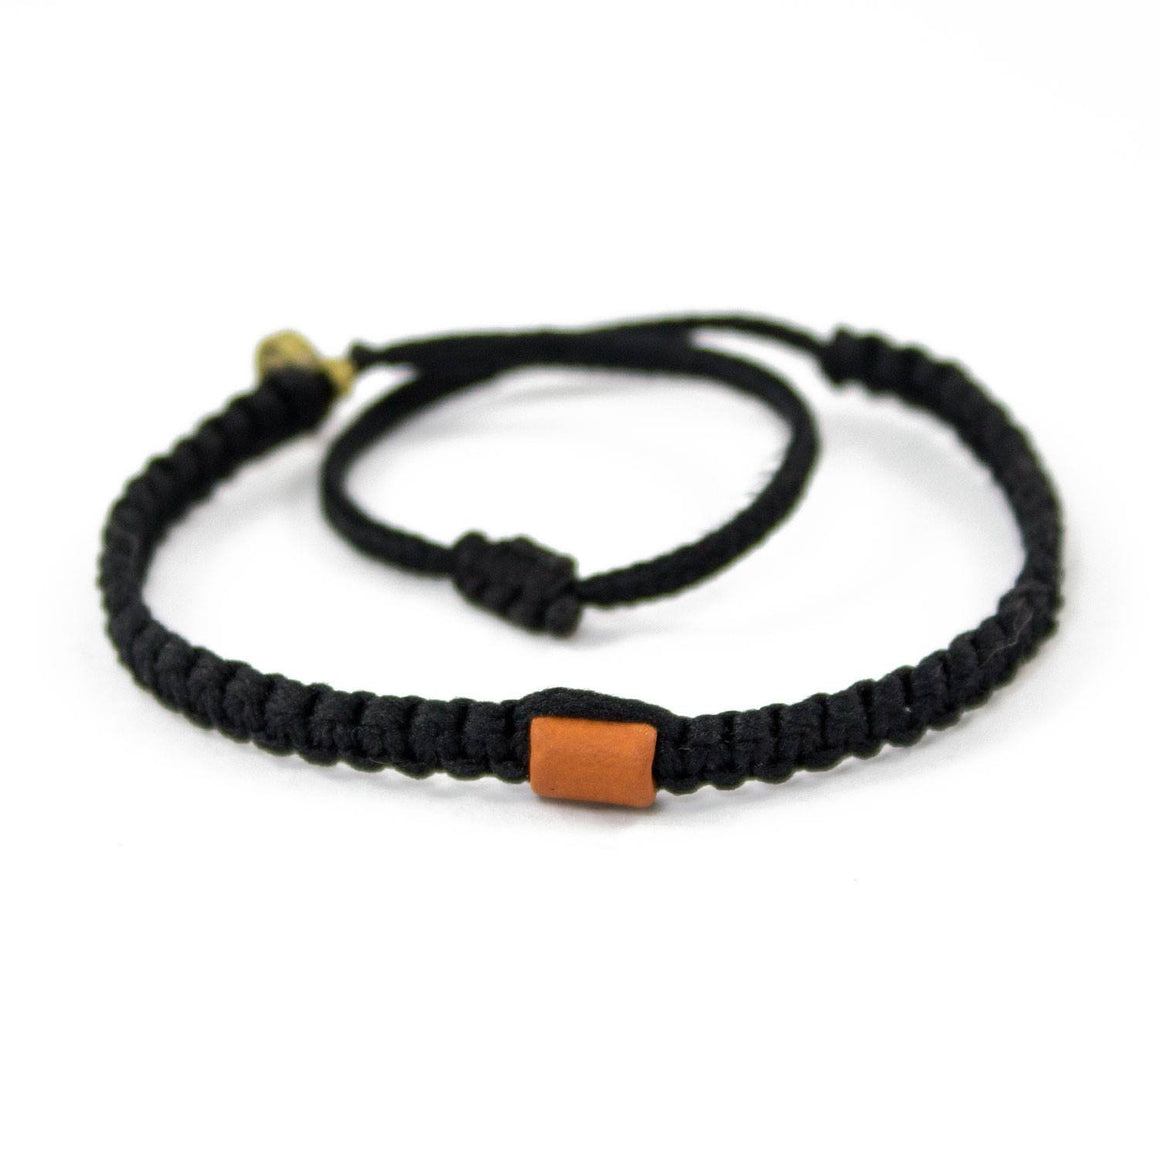 Brown Cuzco Carbon Black bolivian bracelets cover